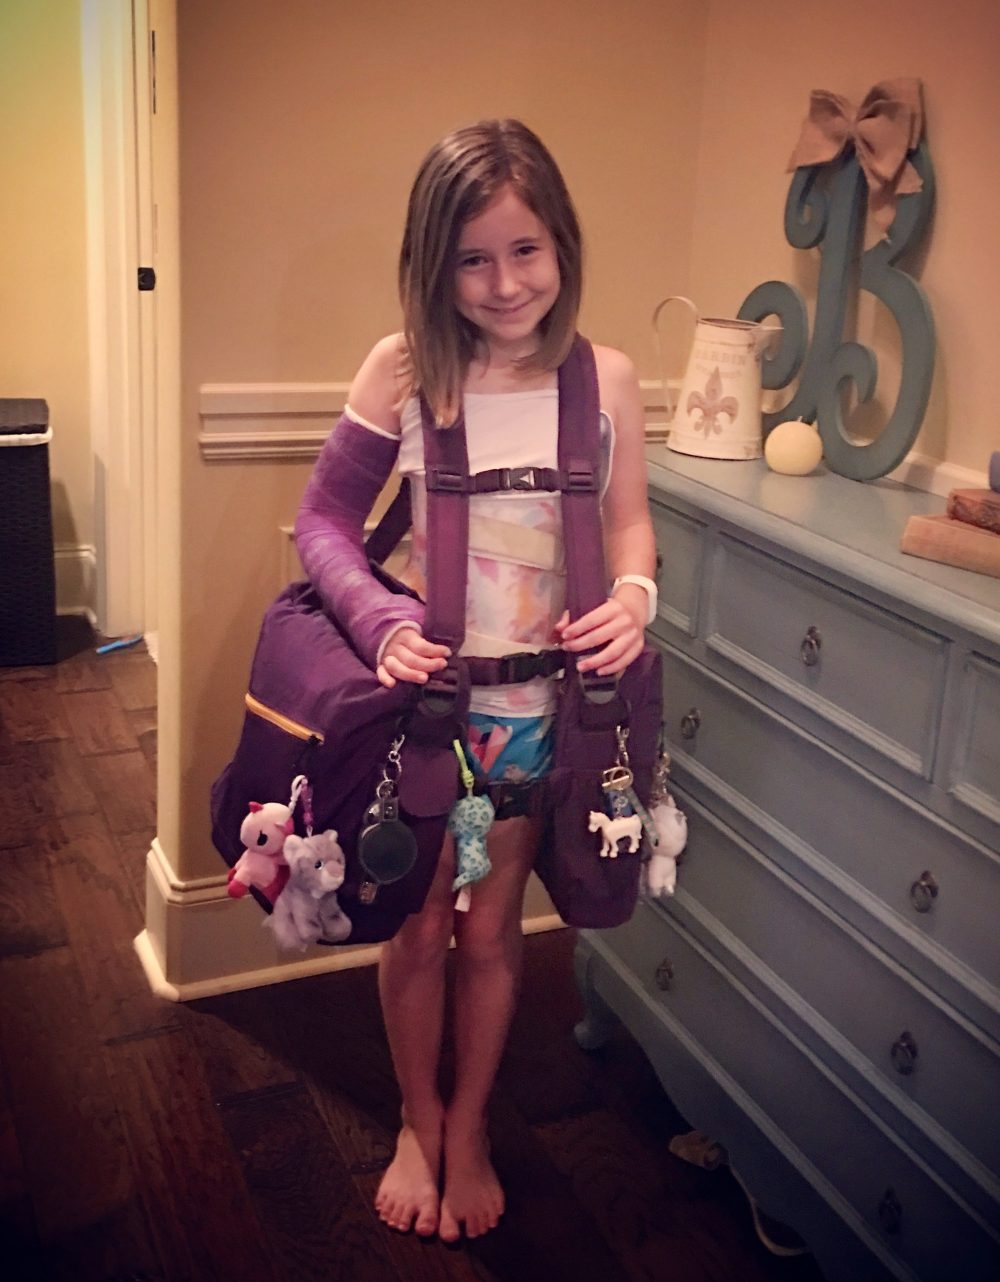 Little girl with scoliosis brace and her purple BackTpack for school